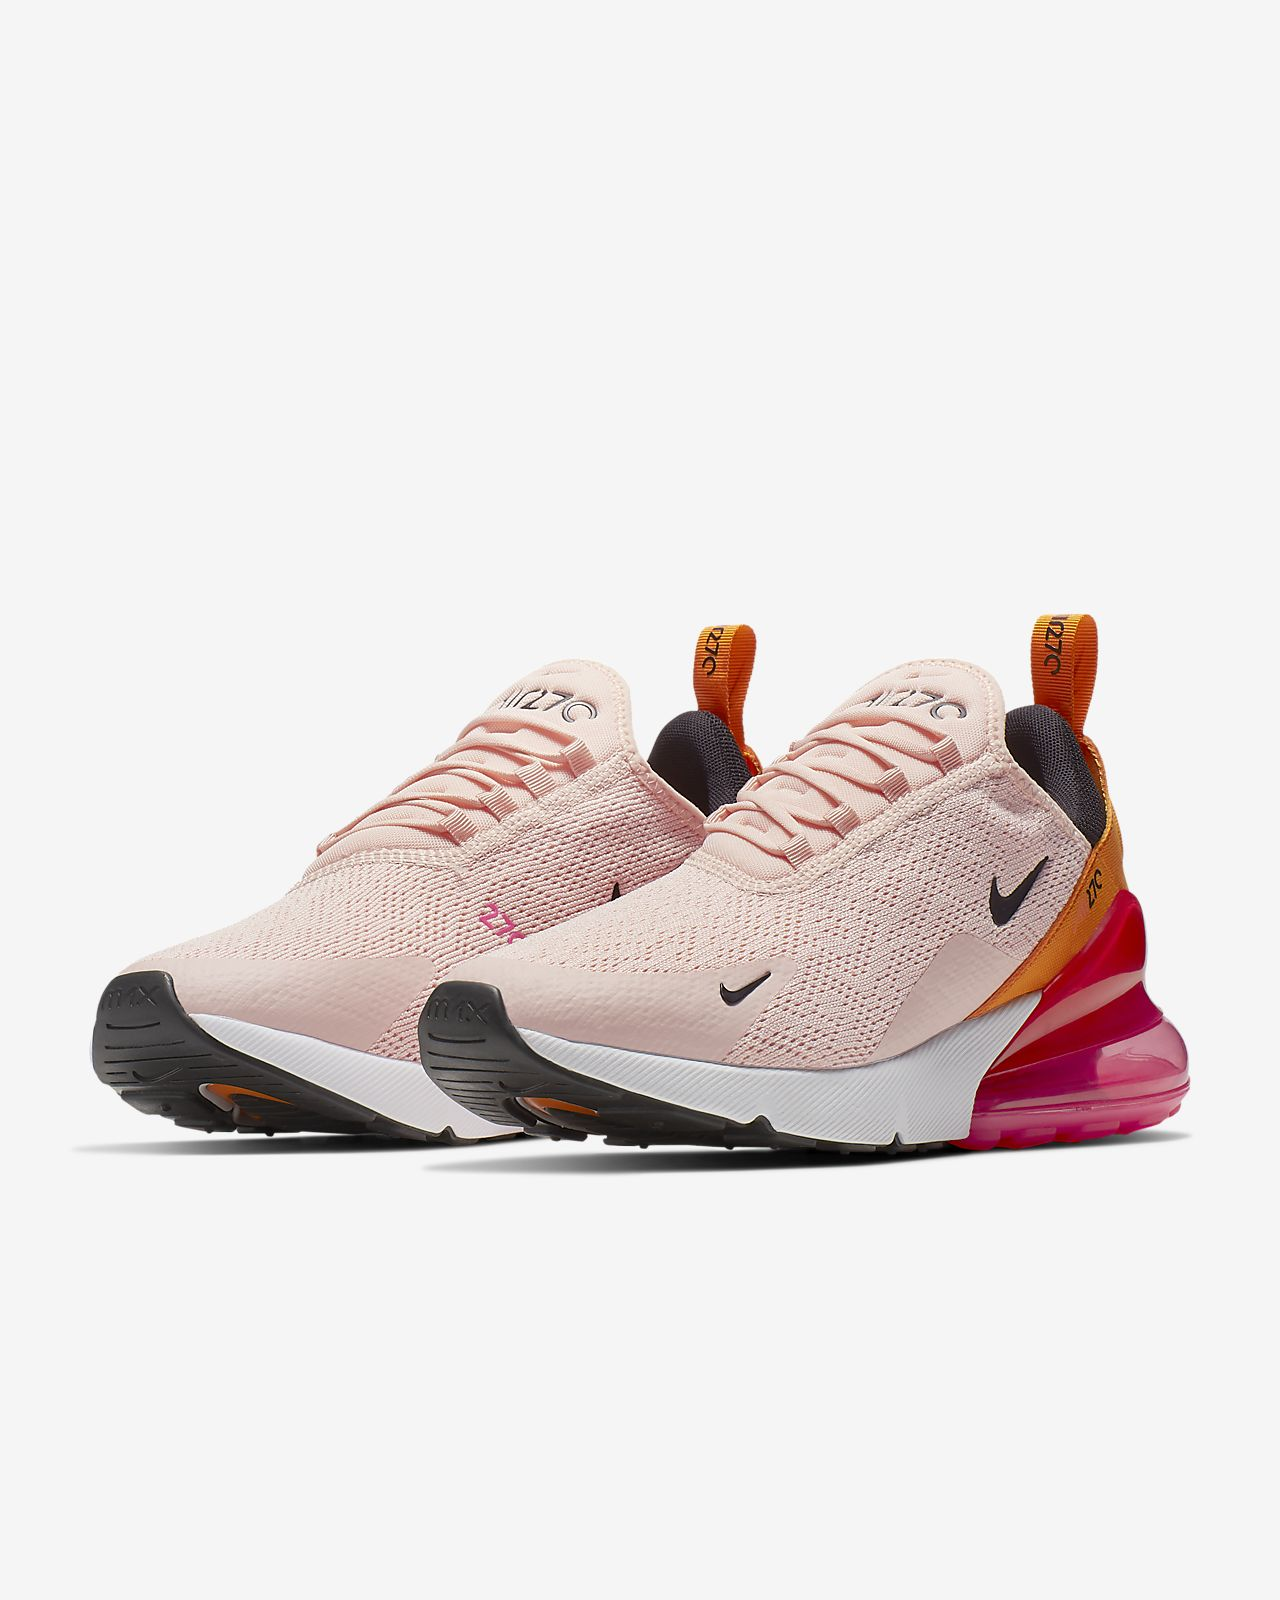 separation shoes 726aa 1984a ... Nike Air Max 270 Women s Shoe